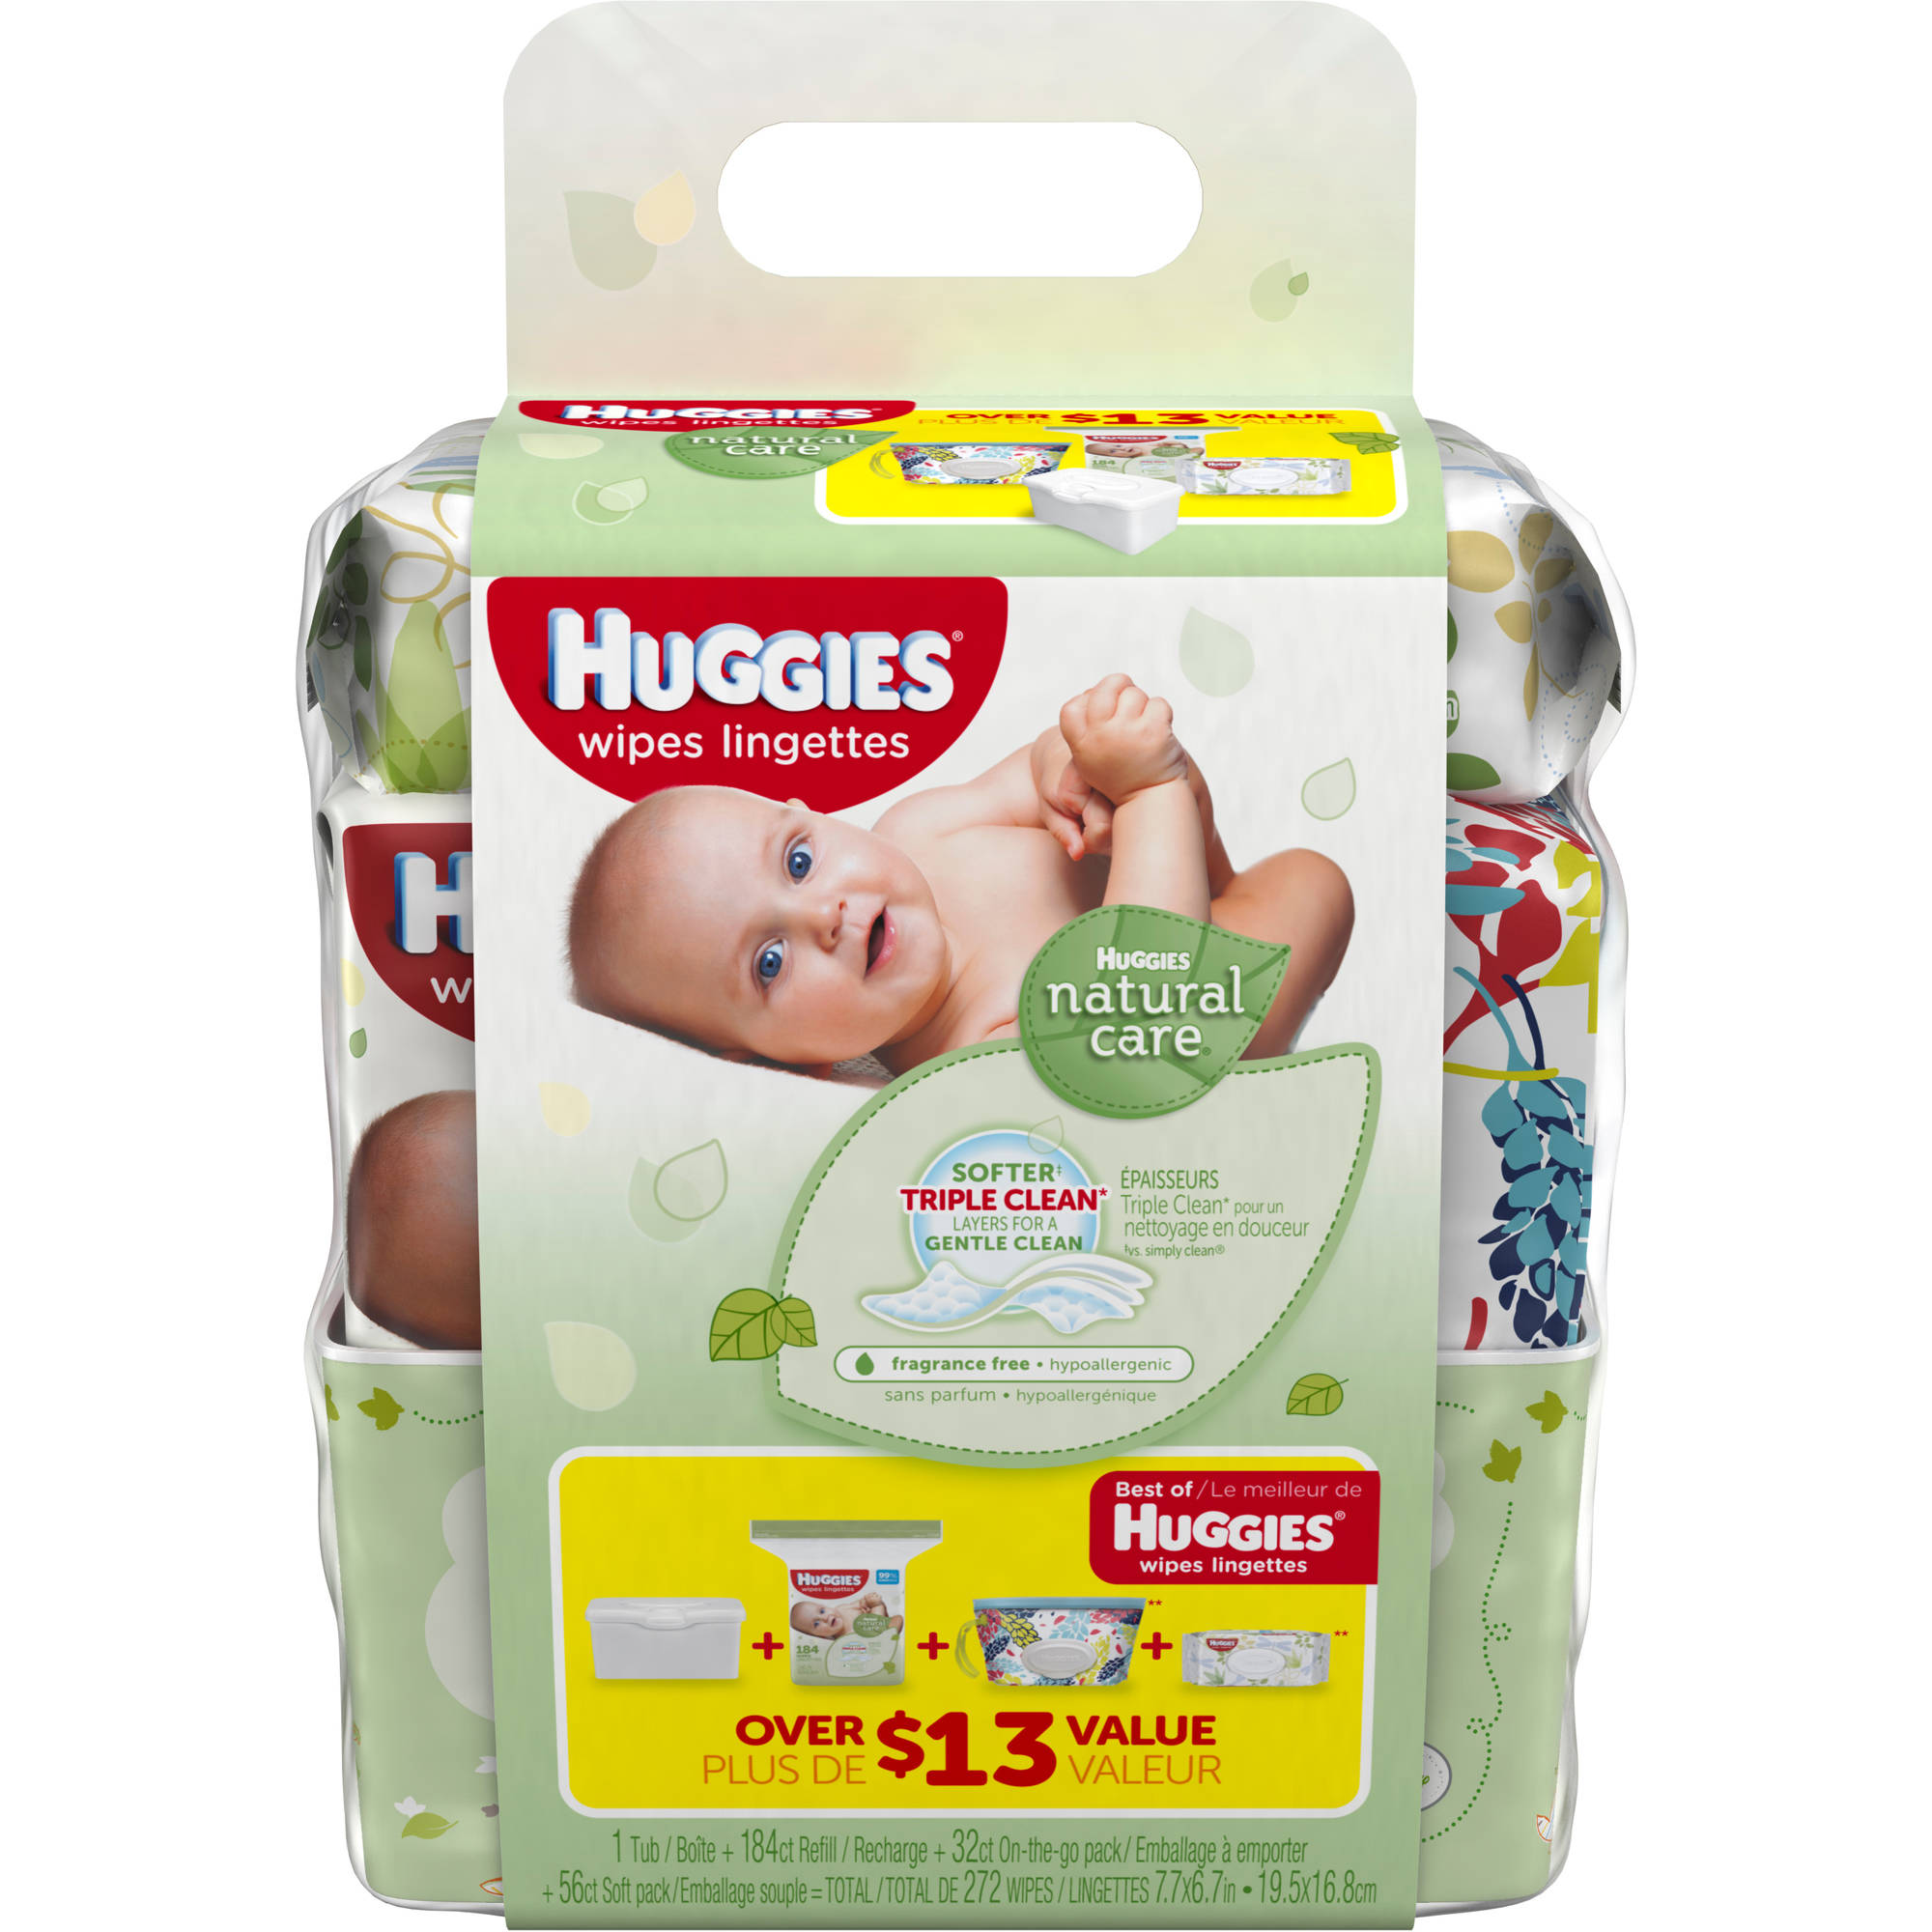 Huggies Natural Care Baby Wipes Refill Walmart